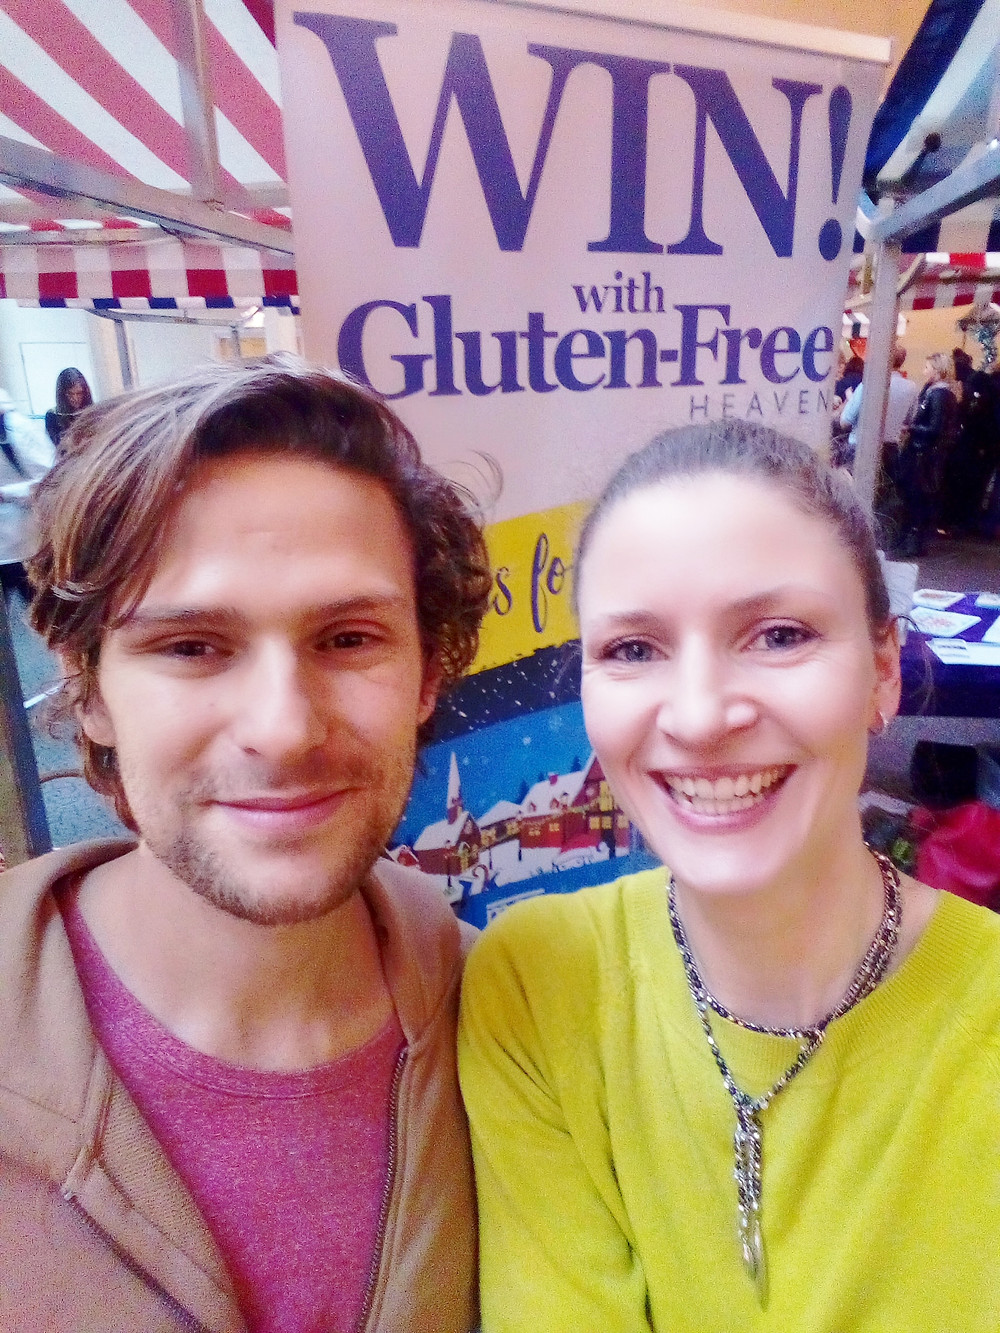 Ali at the Gluten-Free Heaven stand